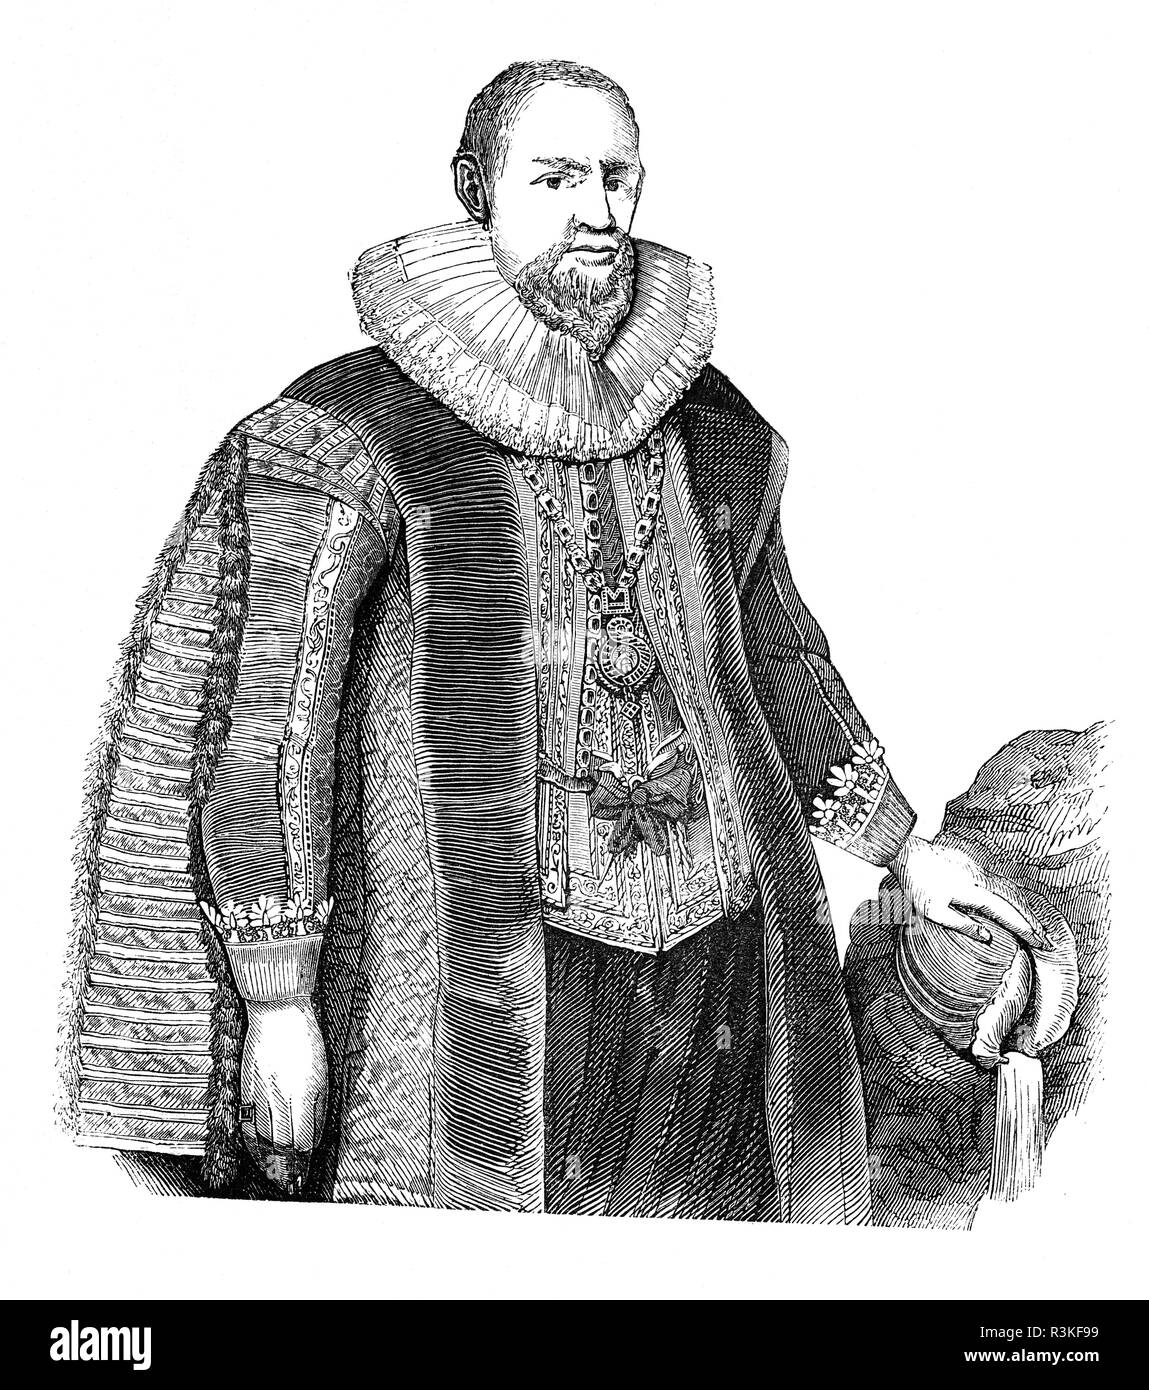 Sir Hugh Myddelton (or Middleton), 1st Baronet (1560-1631) was a Welsh clothmaker, entrepreneur, mine-owner, banker, self-taught engineer and became a successful goldsmith and was appointed Royal Jeweller by King James I. In 1603 succeeded his father as MP for Denbeigh Boroughs, which he remained until 1628. Myddelton is, however, best remembered as the driving force behind the construction of the New River, an ambitious engineering project to bring clean water from the River Lea, near Ware, in Hertfordshire to New River Head, London constructed between 1608 and 1613. - Stock Image